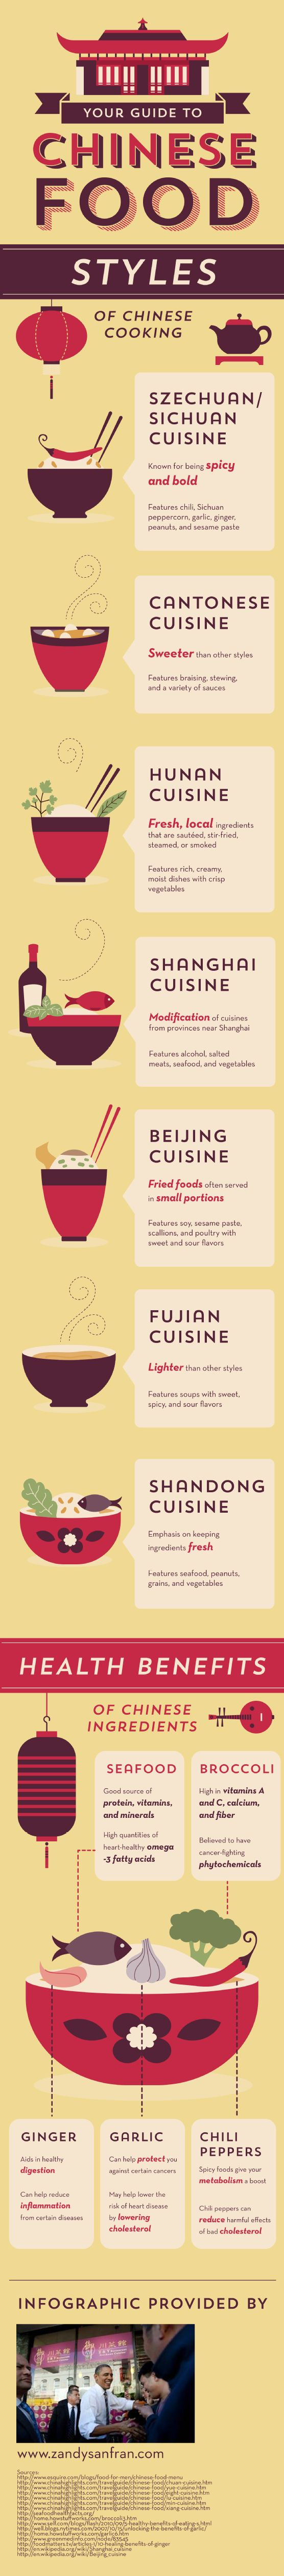 Your Guide to Chinese Food